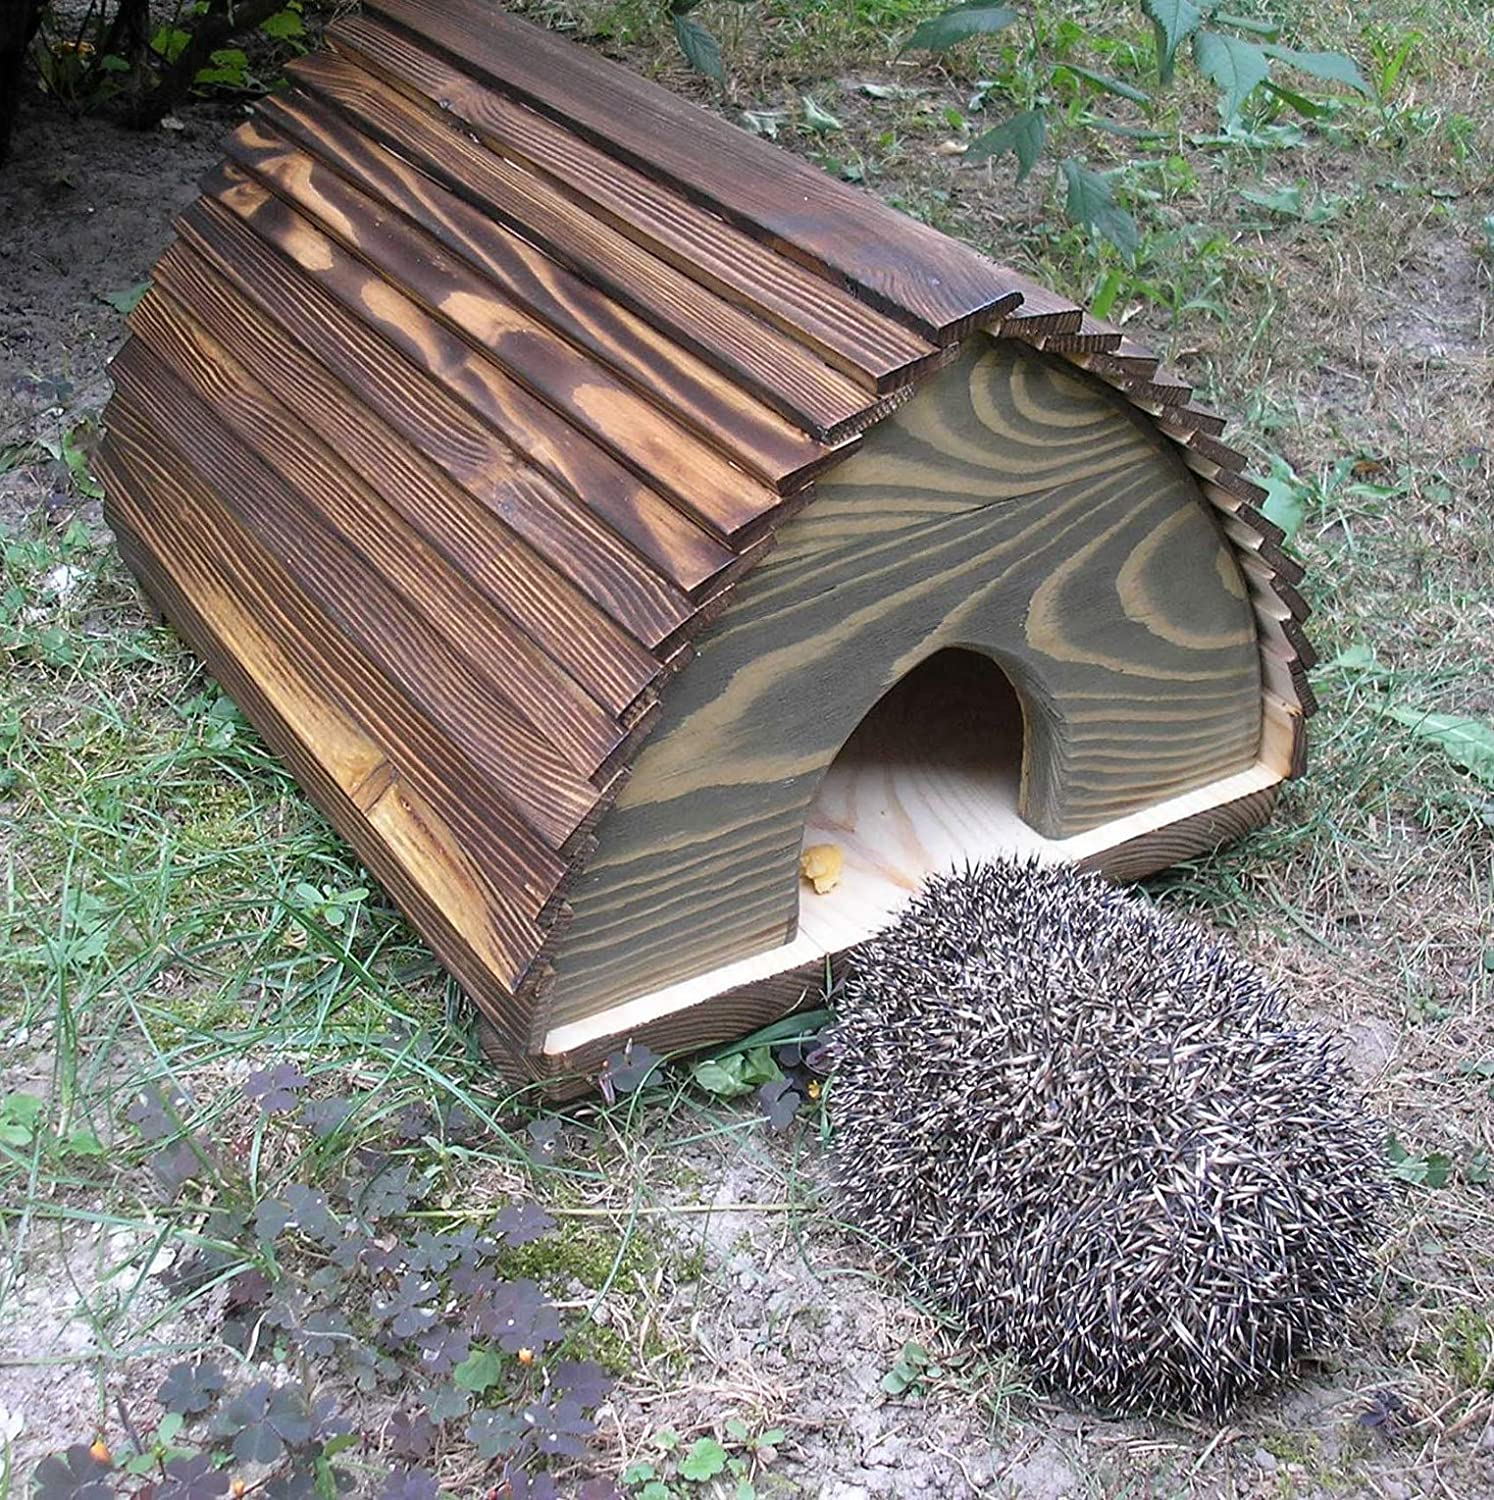 Berk Large Wooden Hedgehog House - Solid Wood Construction Hedgehogs Feeding Station Hibernation Shelter In Garden KIC